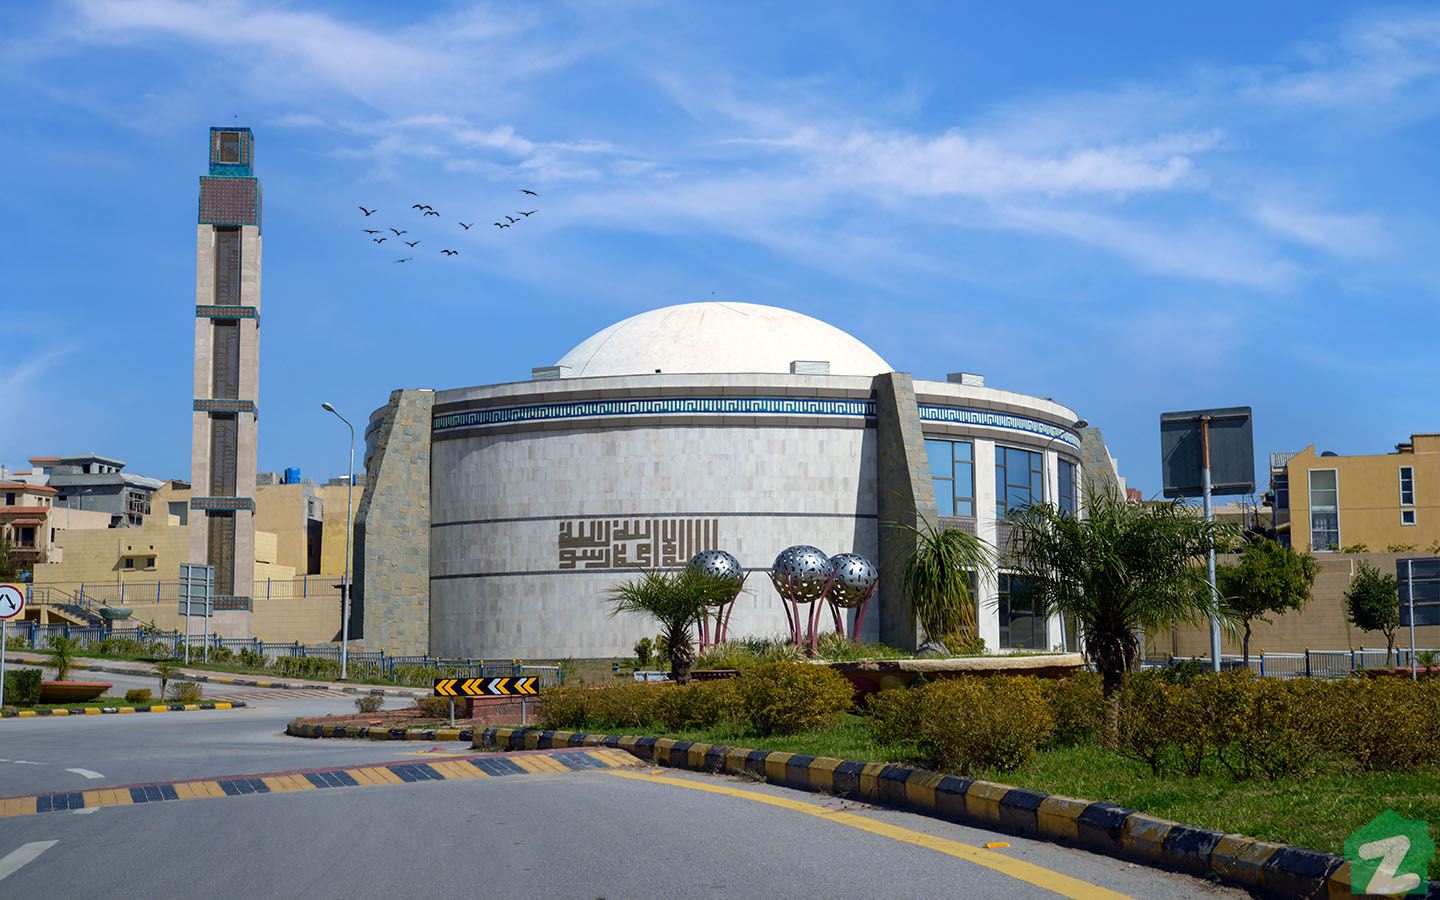 Picture of a mosque located in Rafi Block, Phase 8, Bahria Town, Rawalpindi